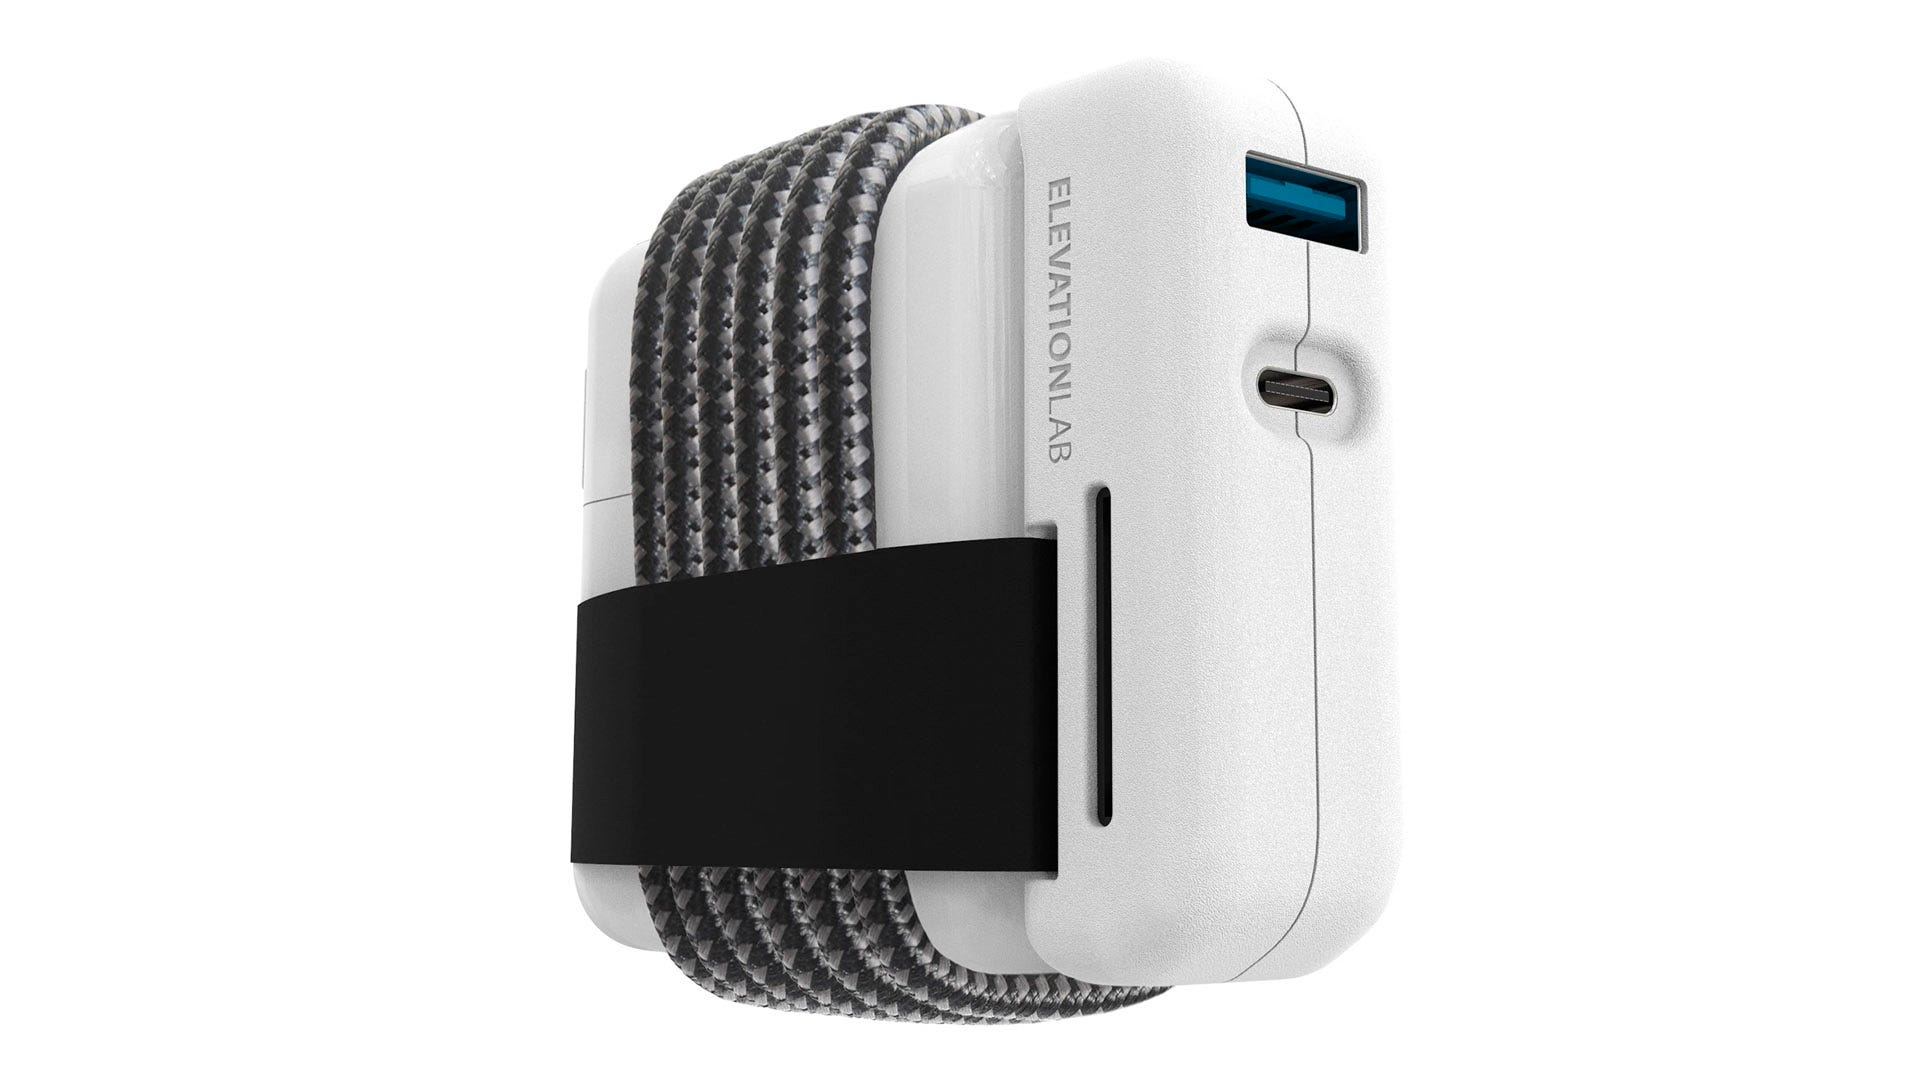 EvolutionHub MacBook charger add-on with coiled cable